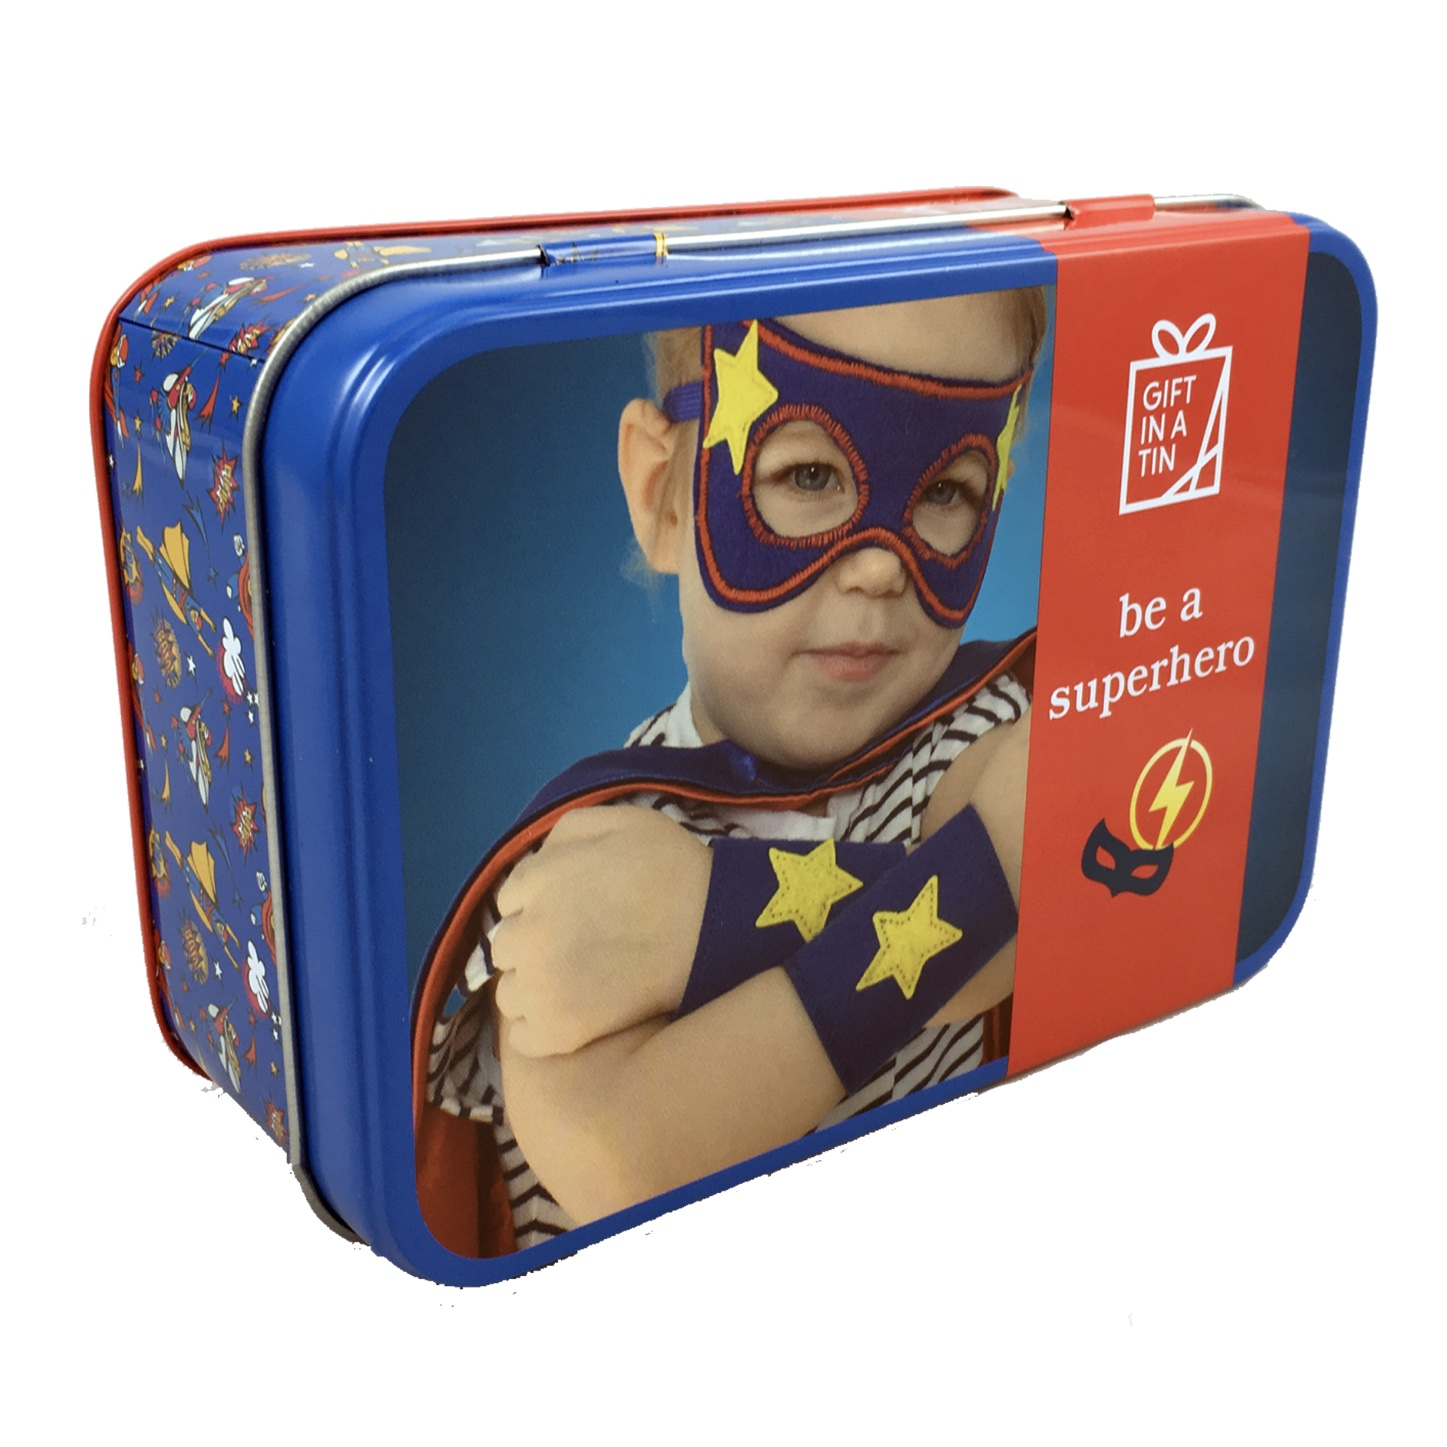 'Be a Superhero' Gift in a Tin